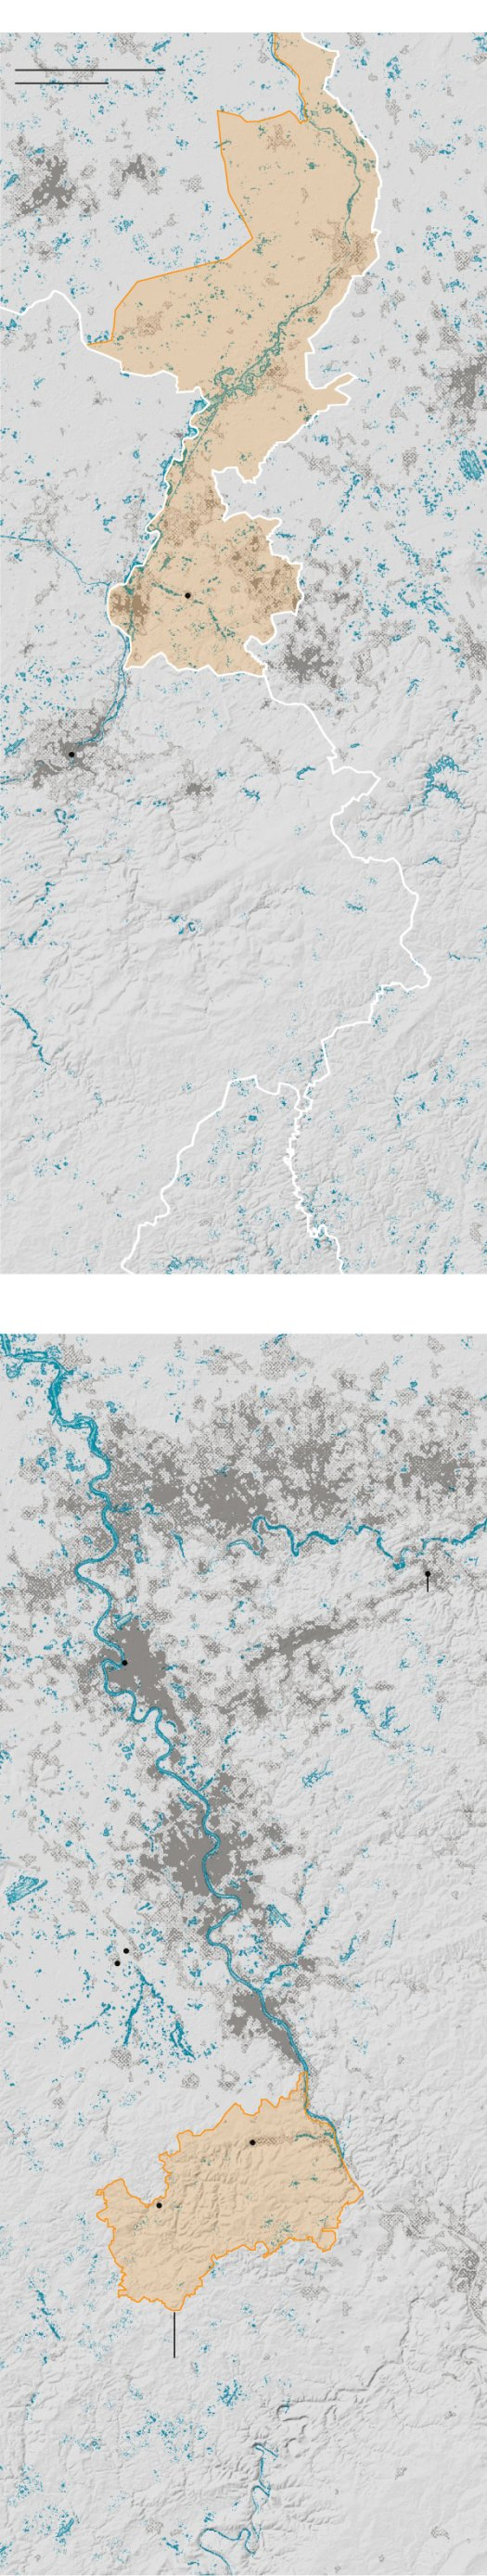 Maps Showing the Extent of the Flooding in Europe 5